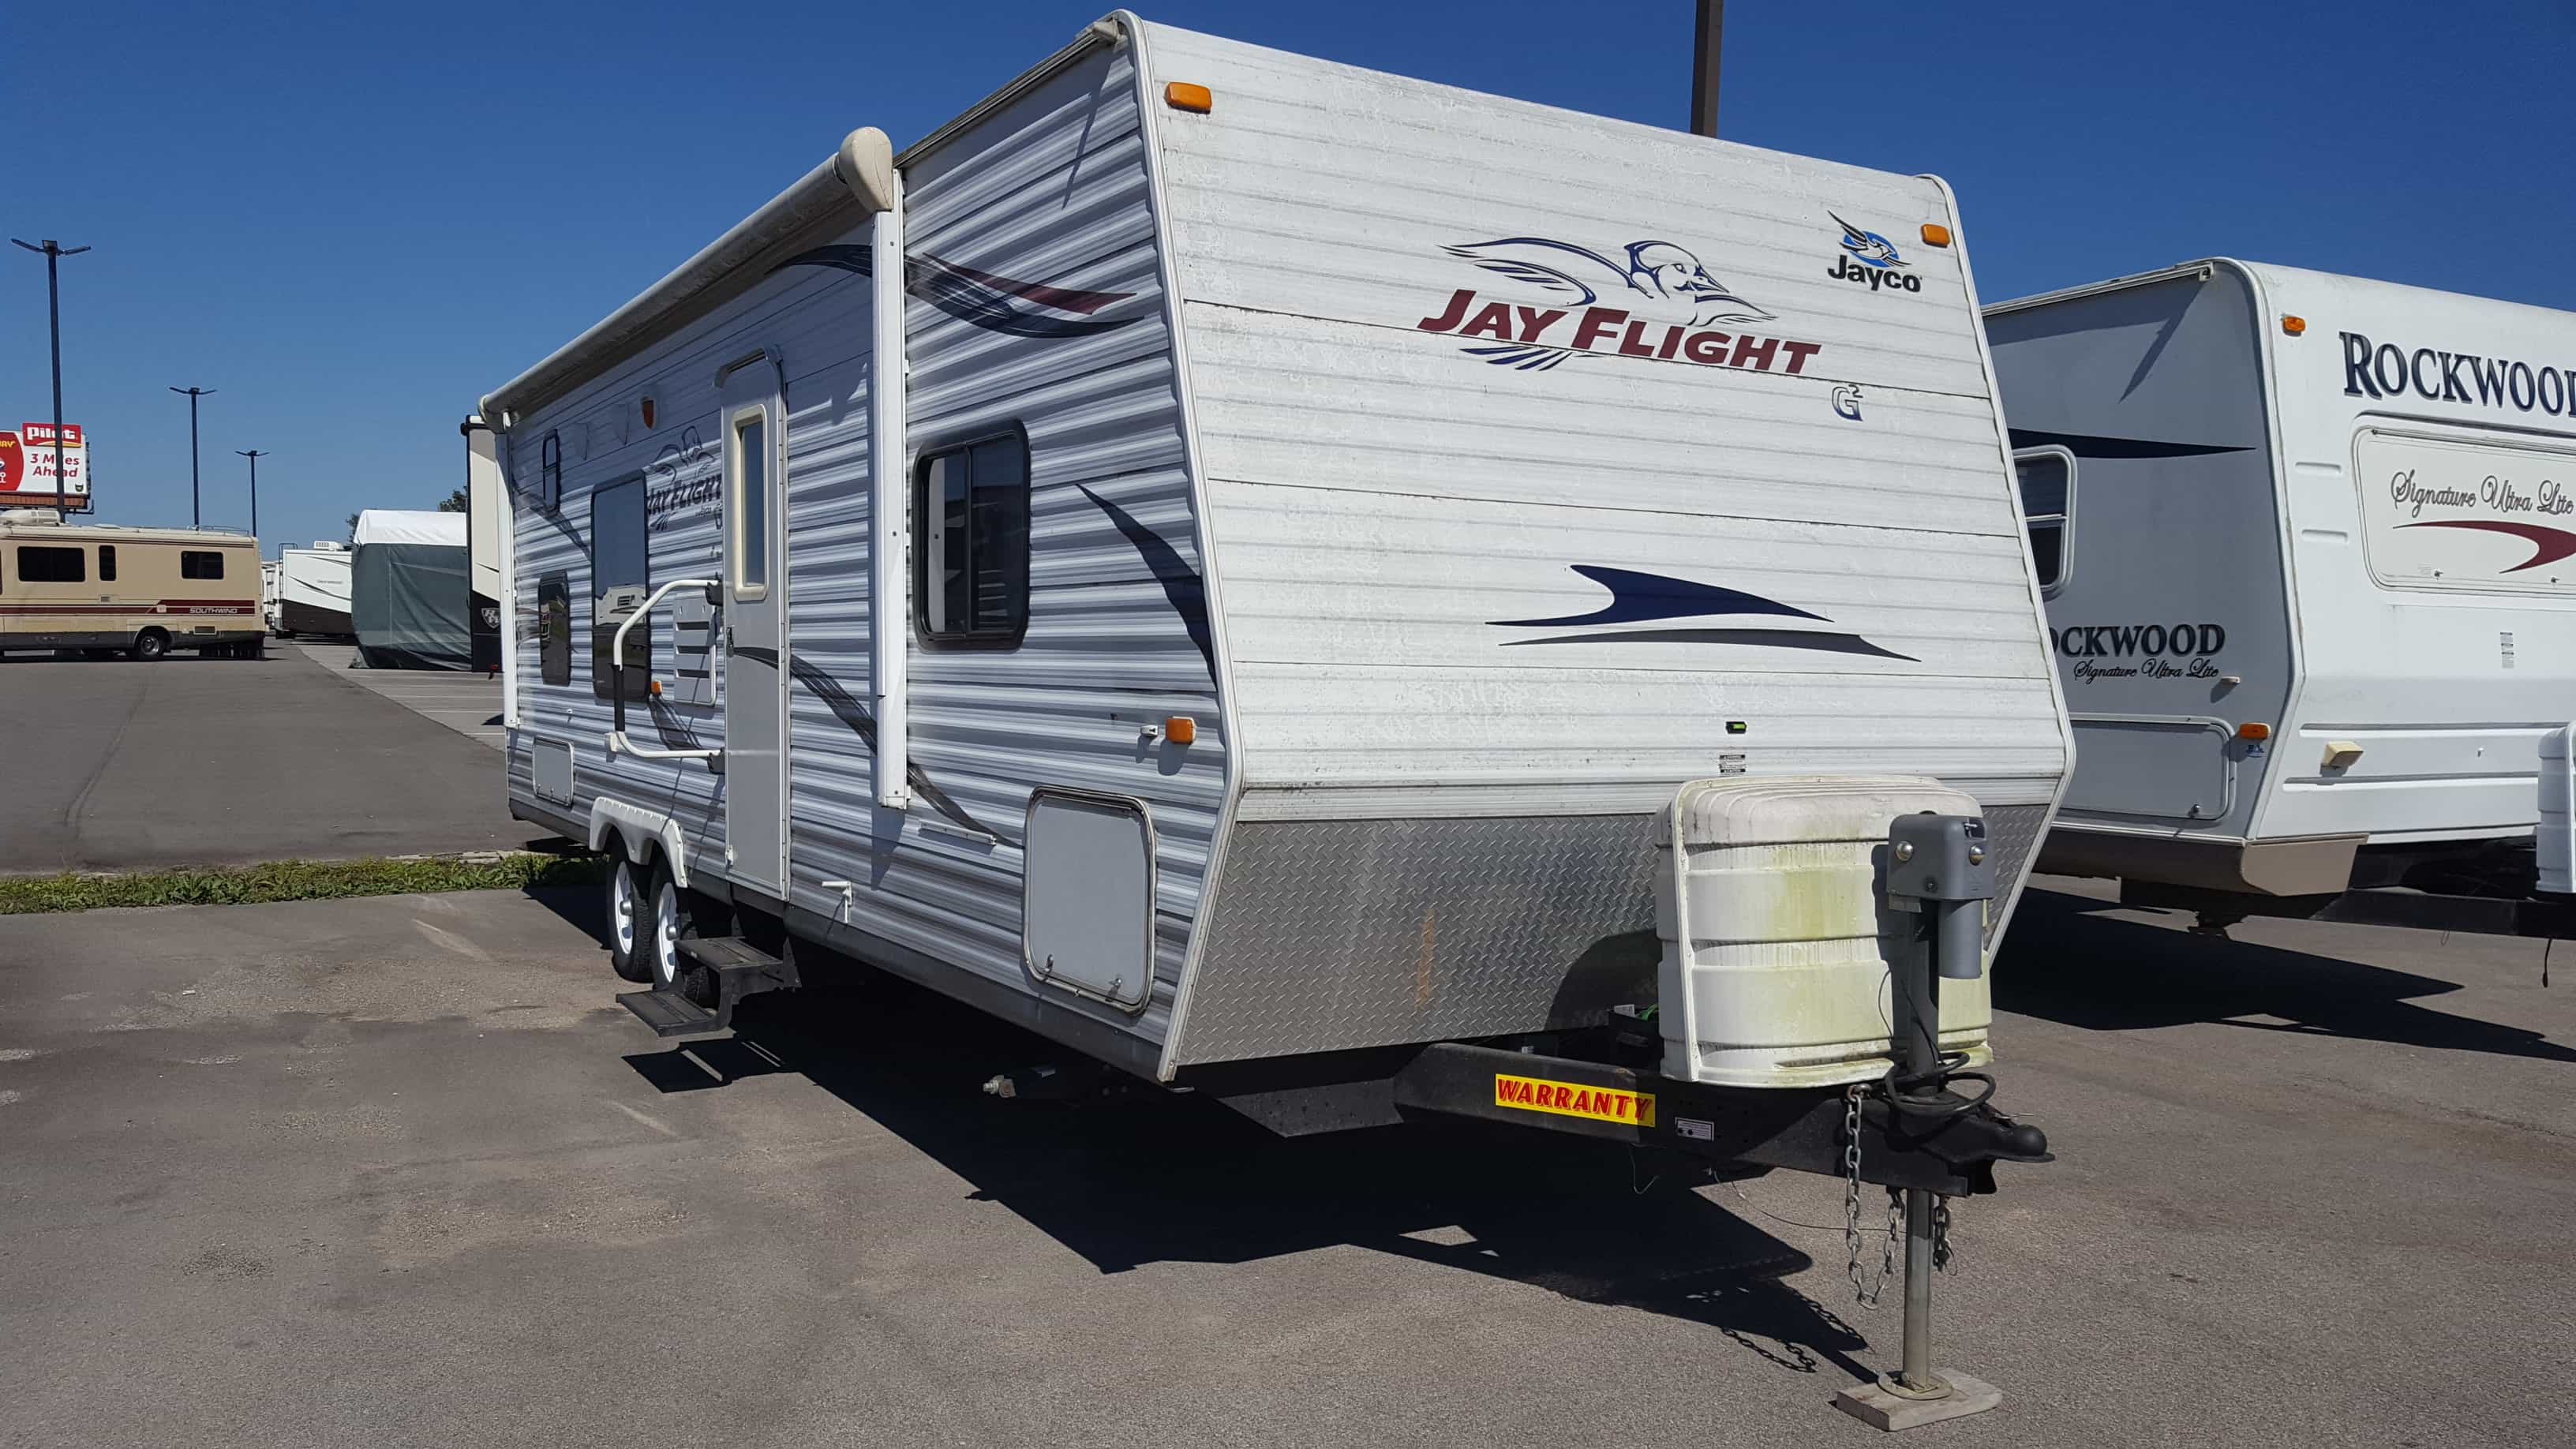 USED 2010 Jayco JAY FLIGHT 29 BHS - American RV